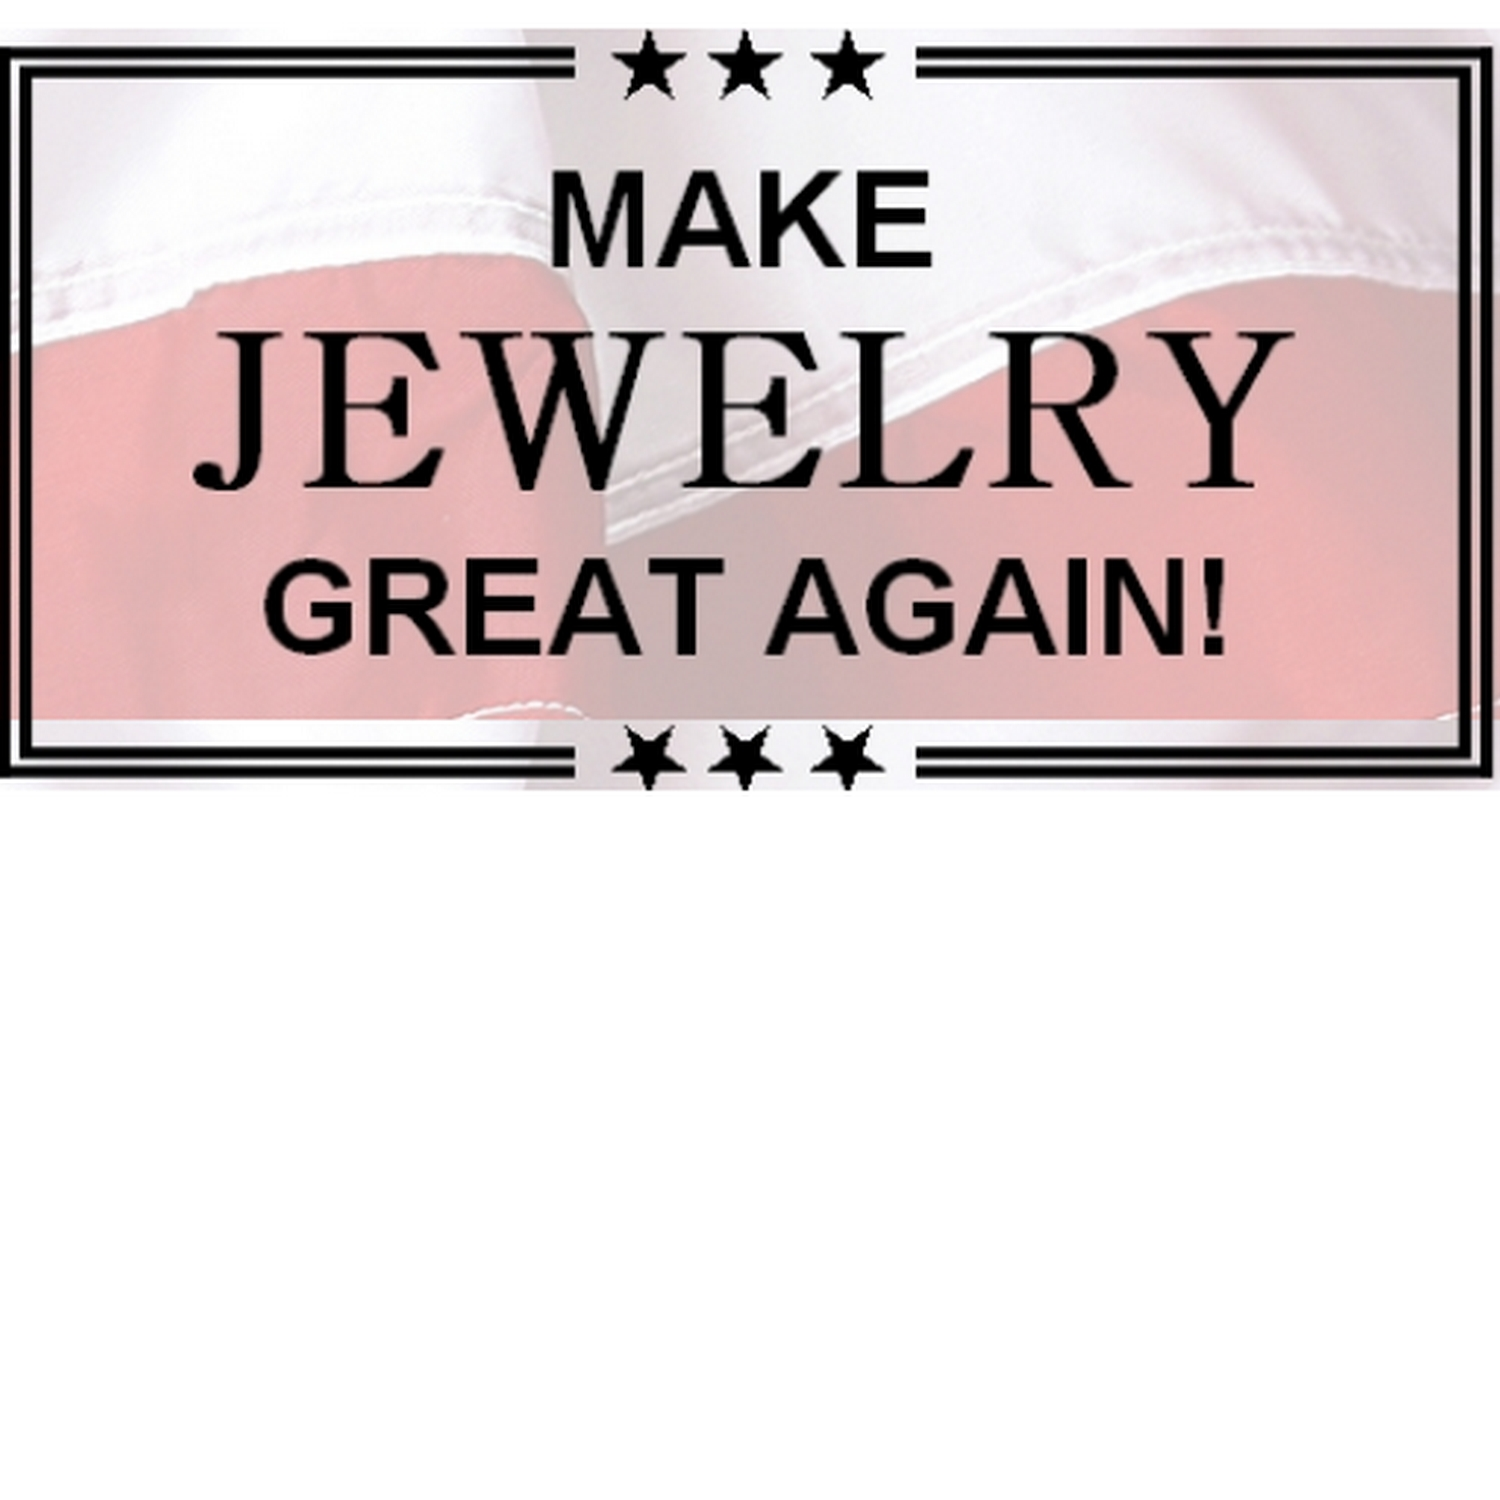 Make Jewelry - Great AgainClick image for more information.